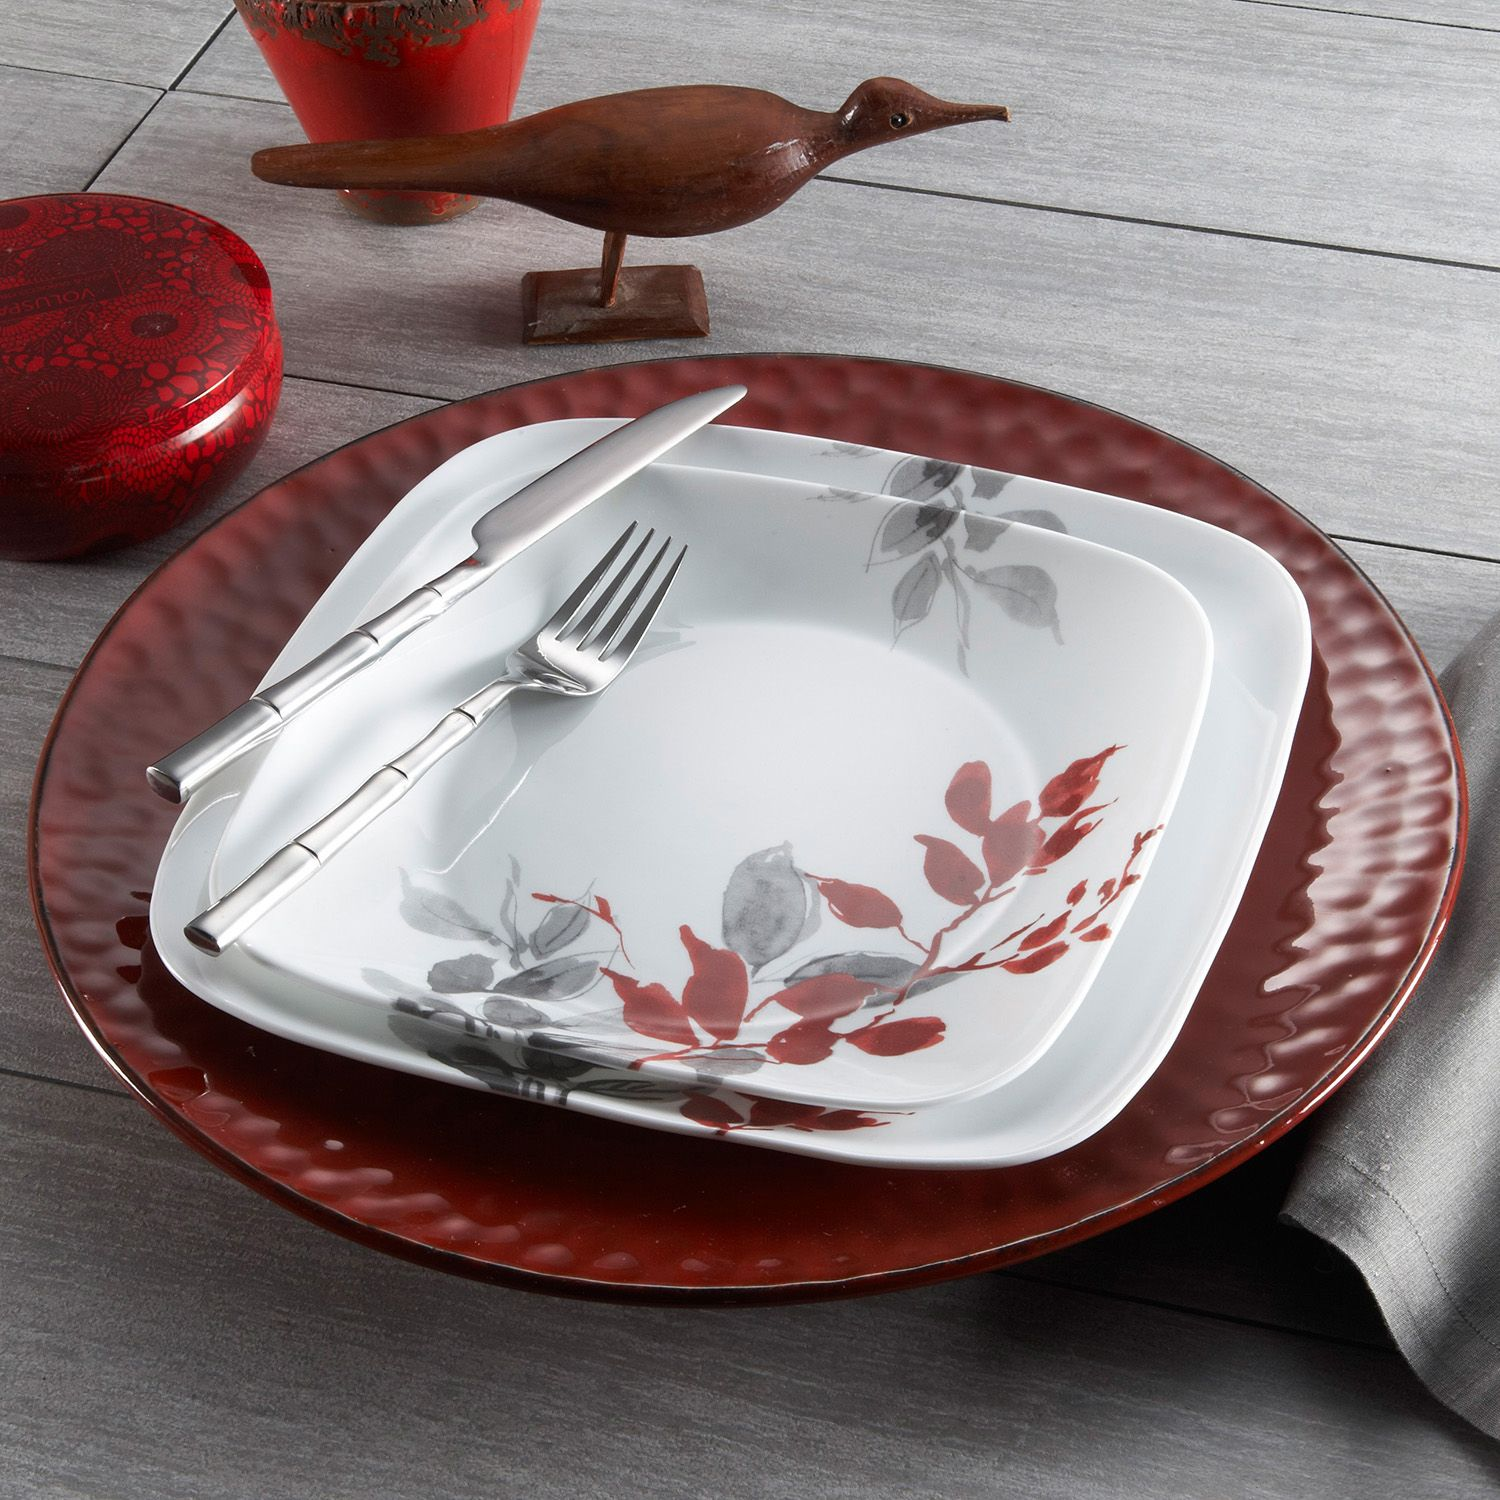 & Dinnerware Sets - Dinnerware u0026 Serveware Kitchen u0026 Dining | Kohlu0027s